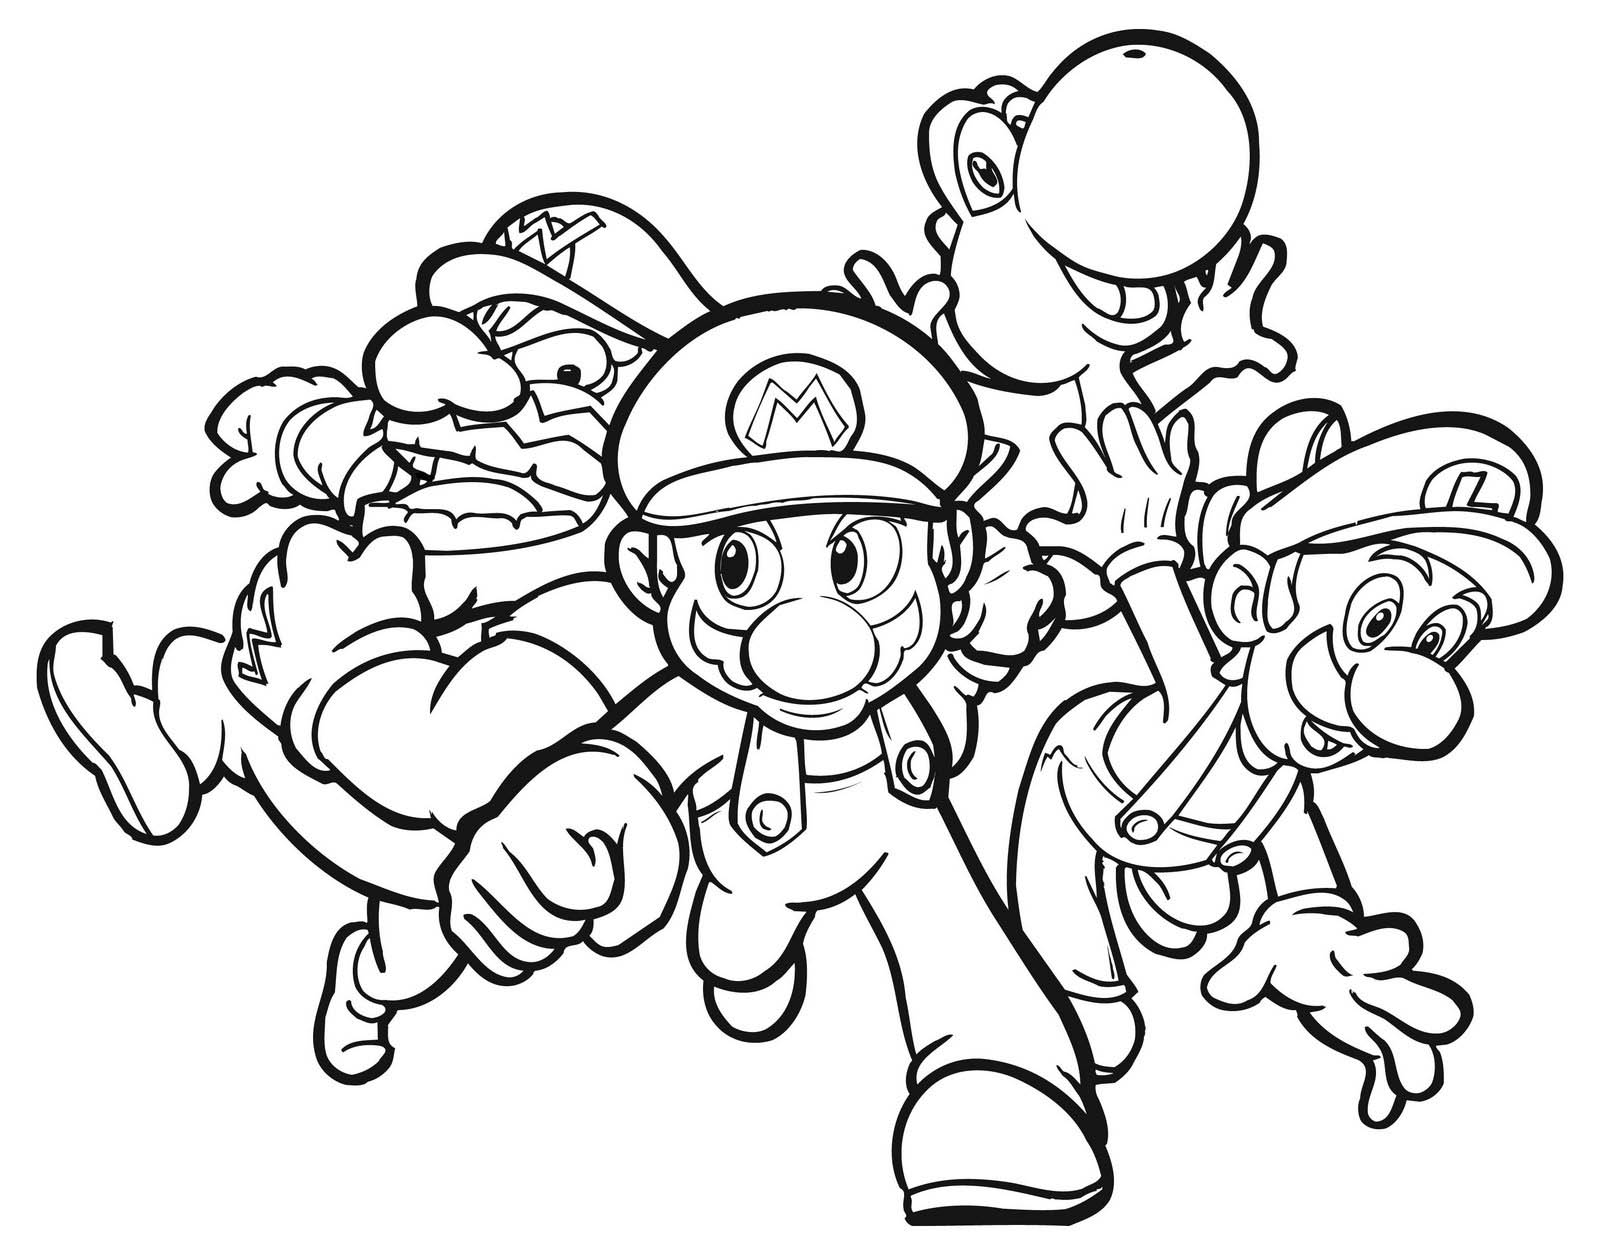 Mario and luigi coloring pages printable - Mario Kart Coloring Pages Free Printable